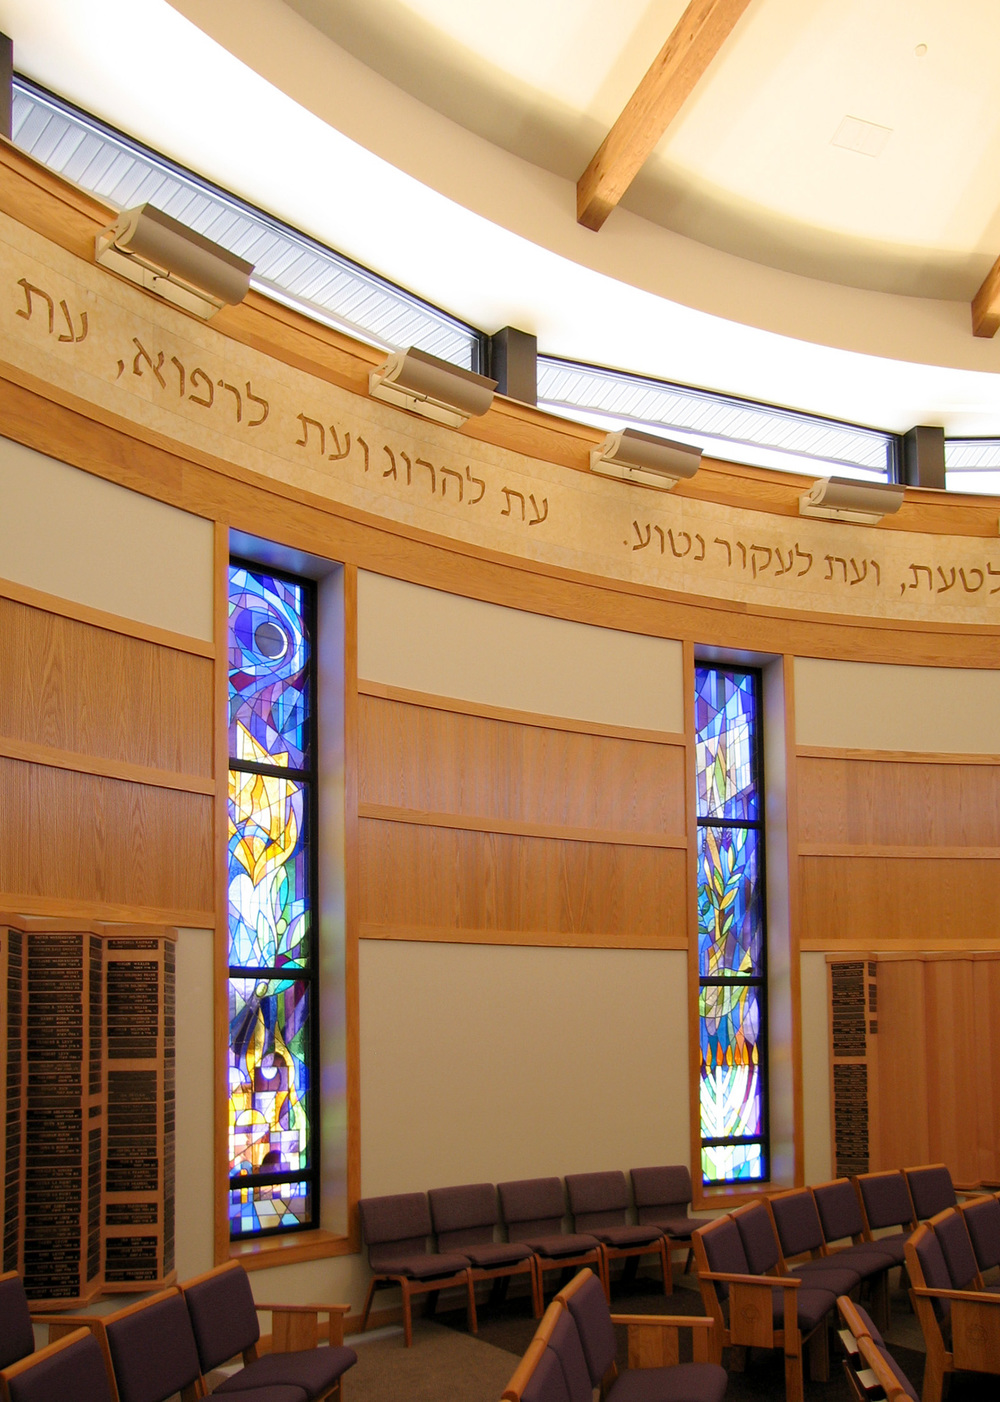 congregation-bnai-isreal-interior-3